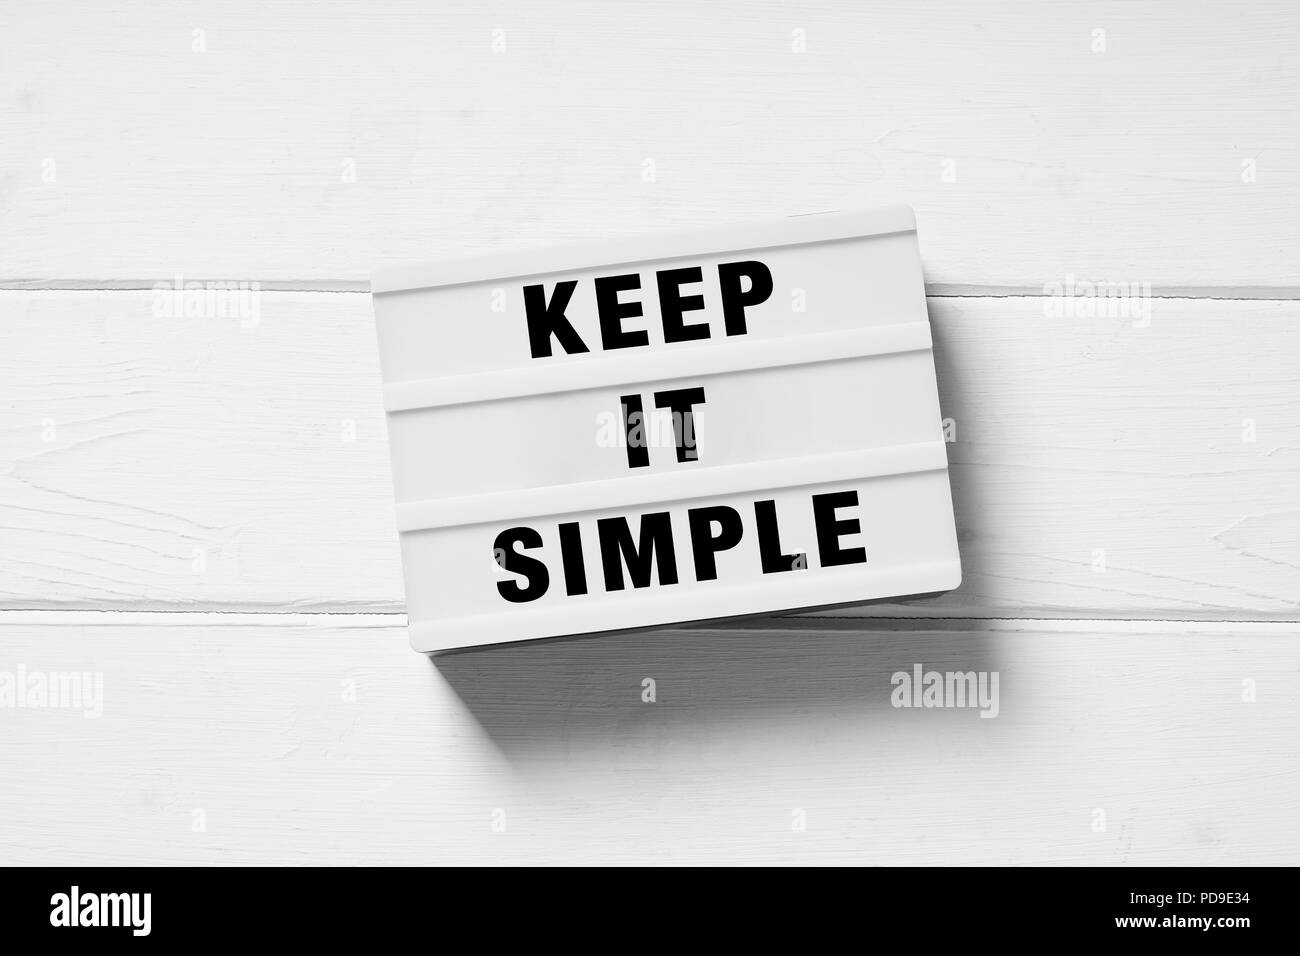 keep it simple text on lightbox sign, minimal flat lay design on white wooden background, simplicity or minimalism concept - Stock Image